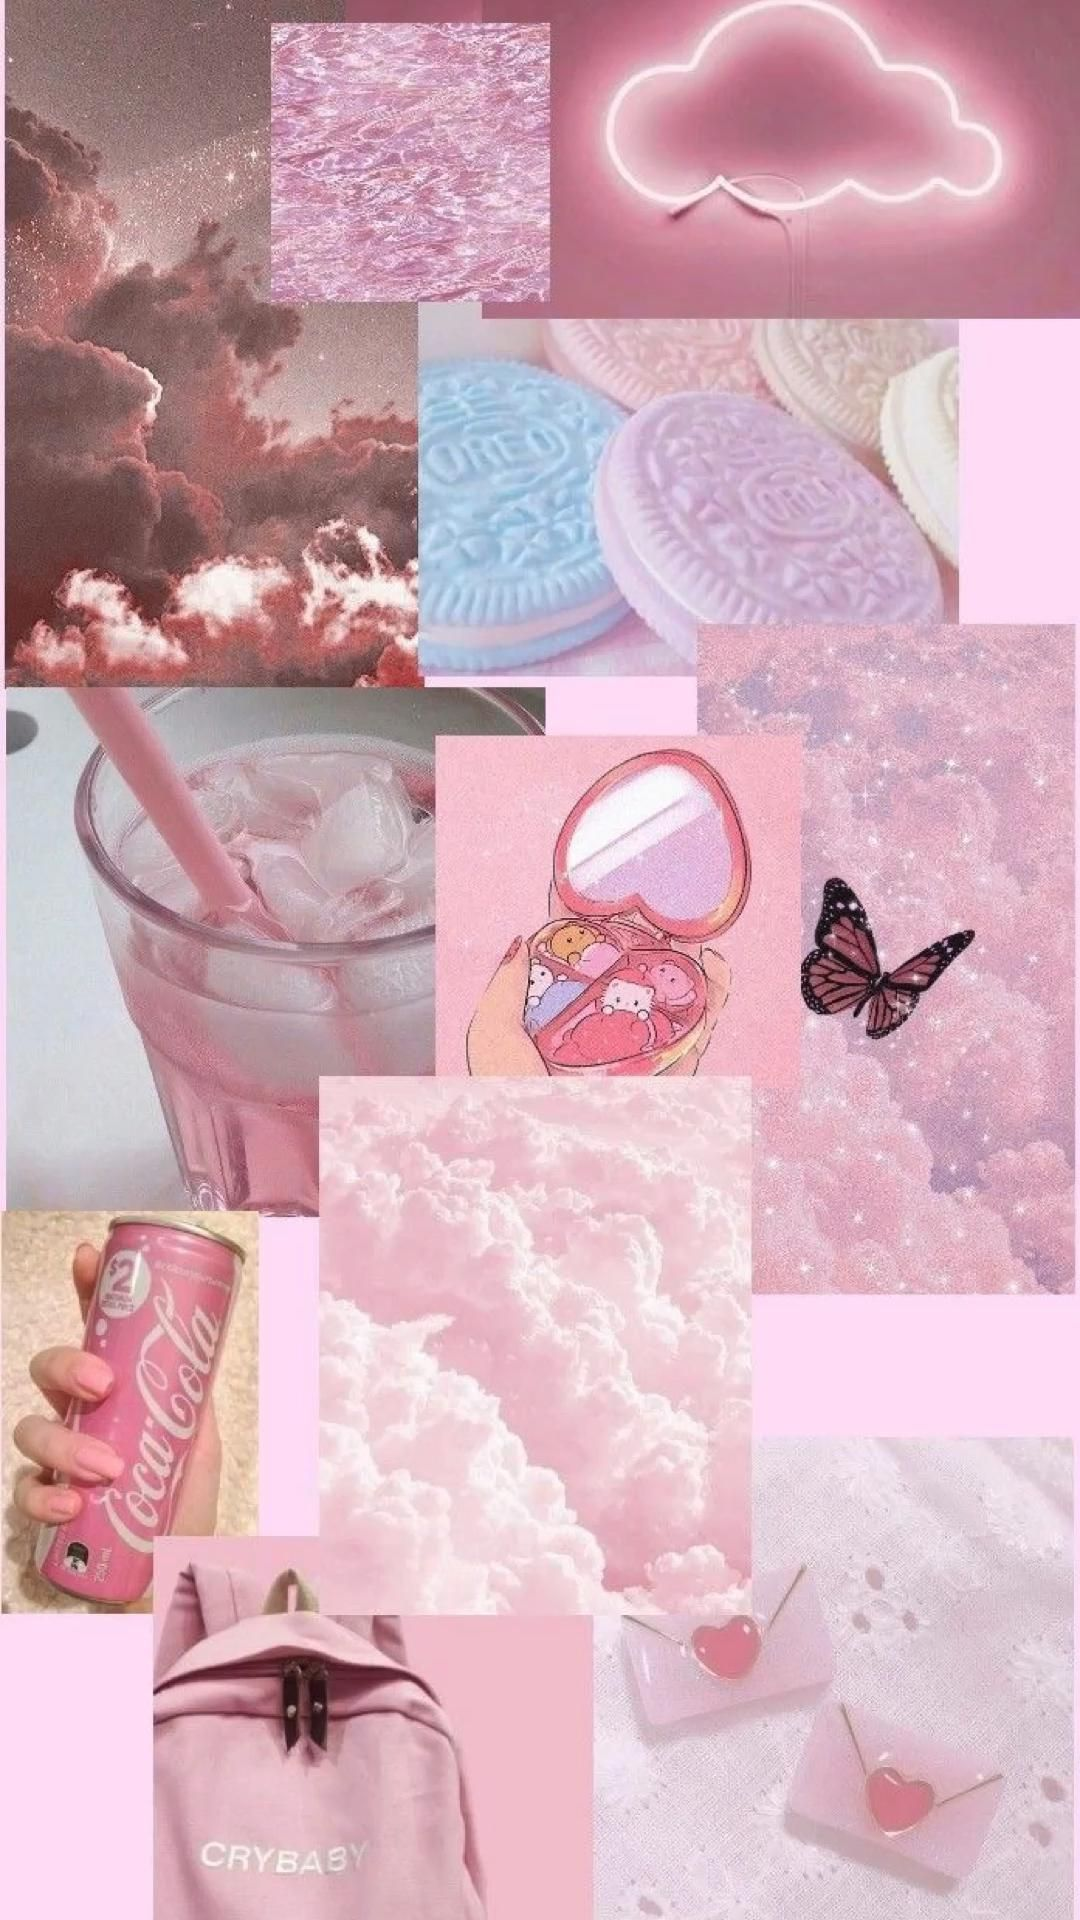 Pink collage aesthetic wallpaper